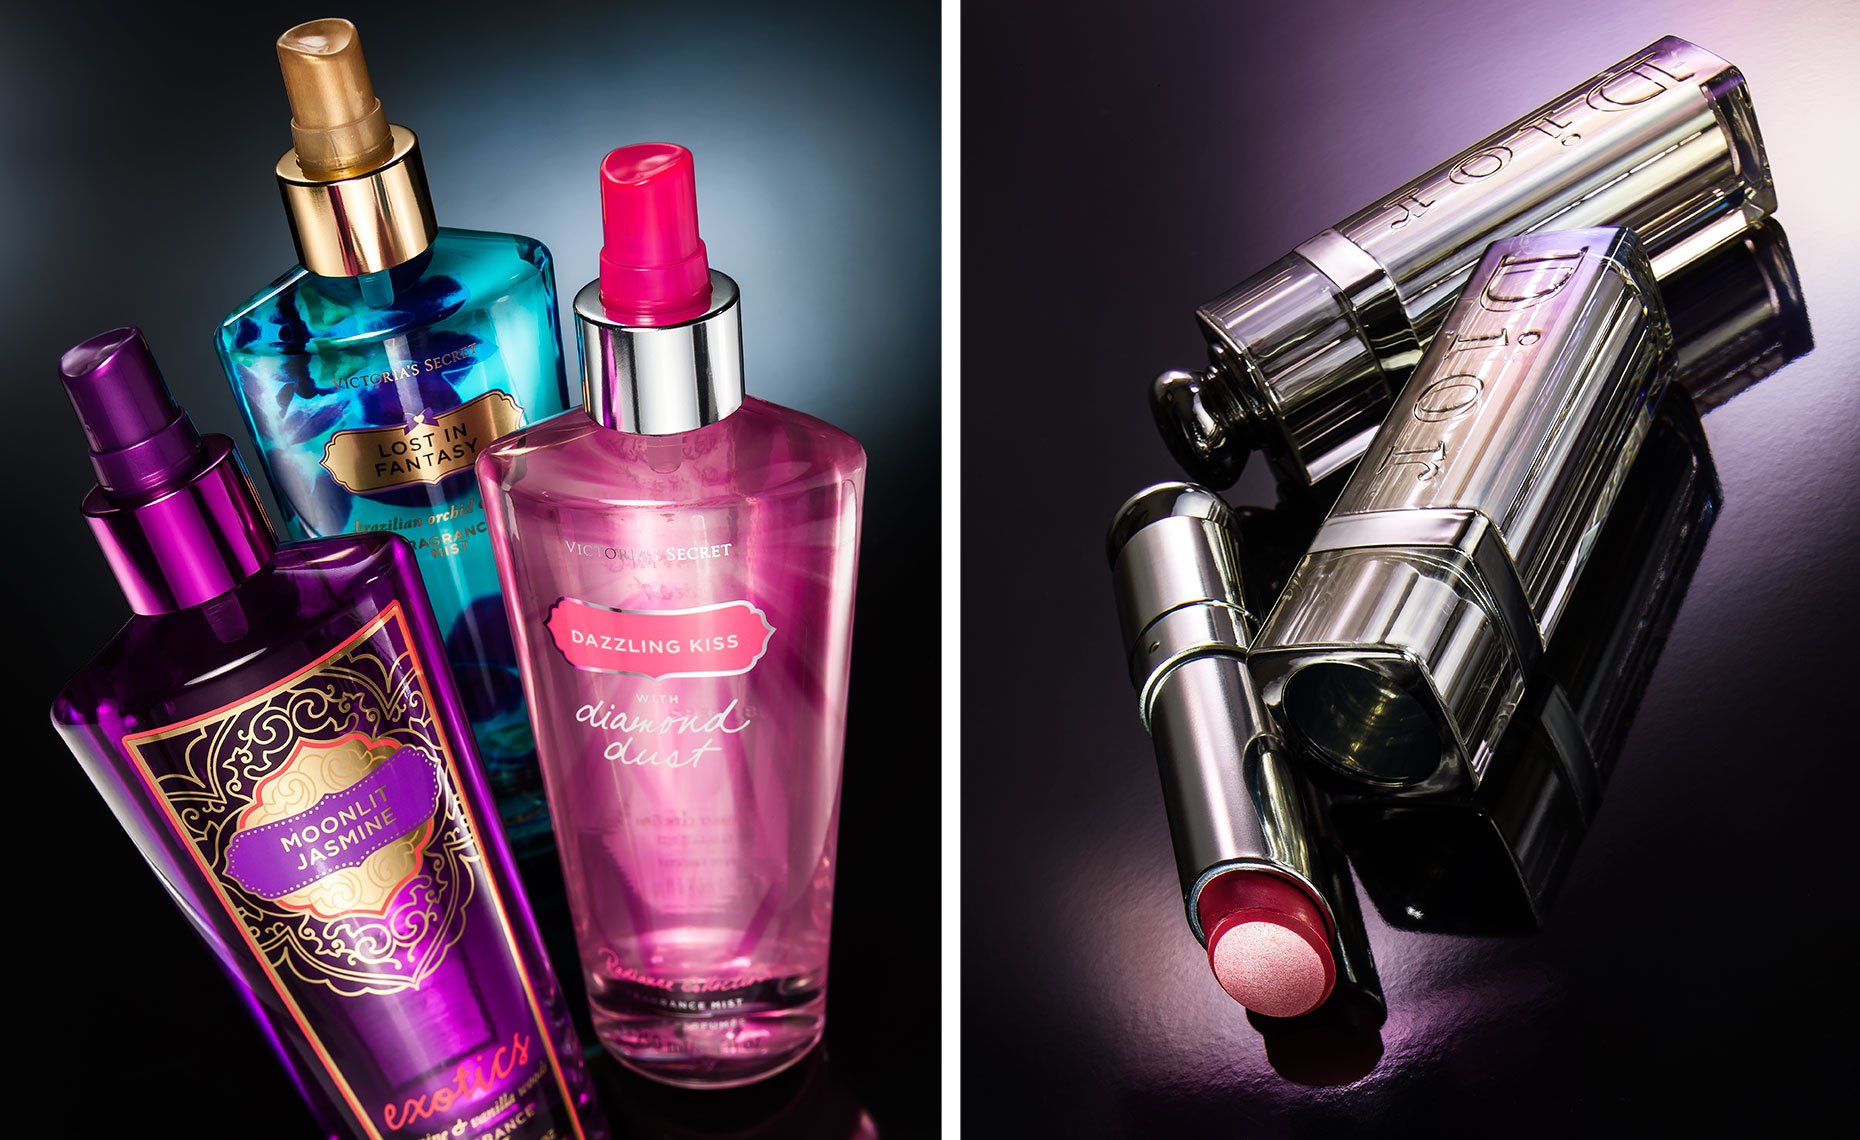 Striking photos of victorias secret perfume and dior lipstick